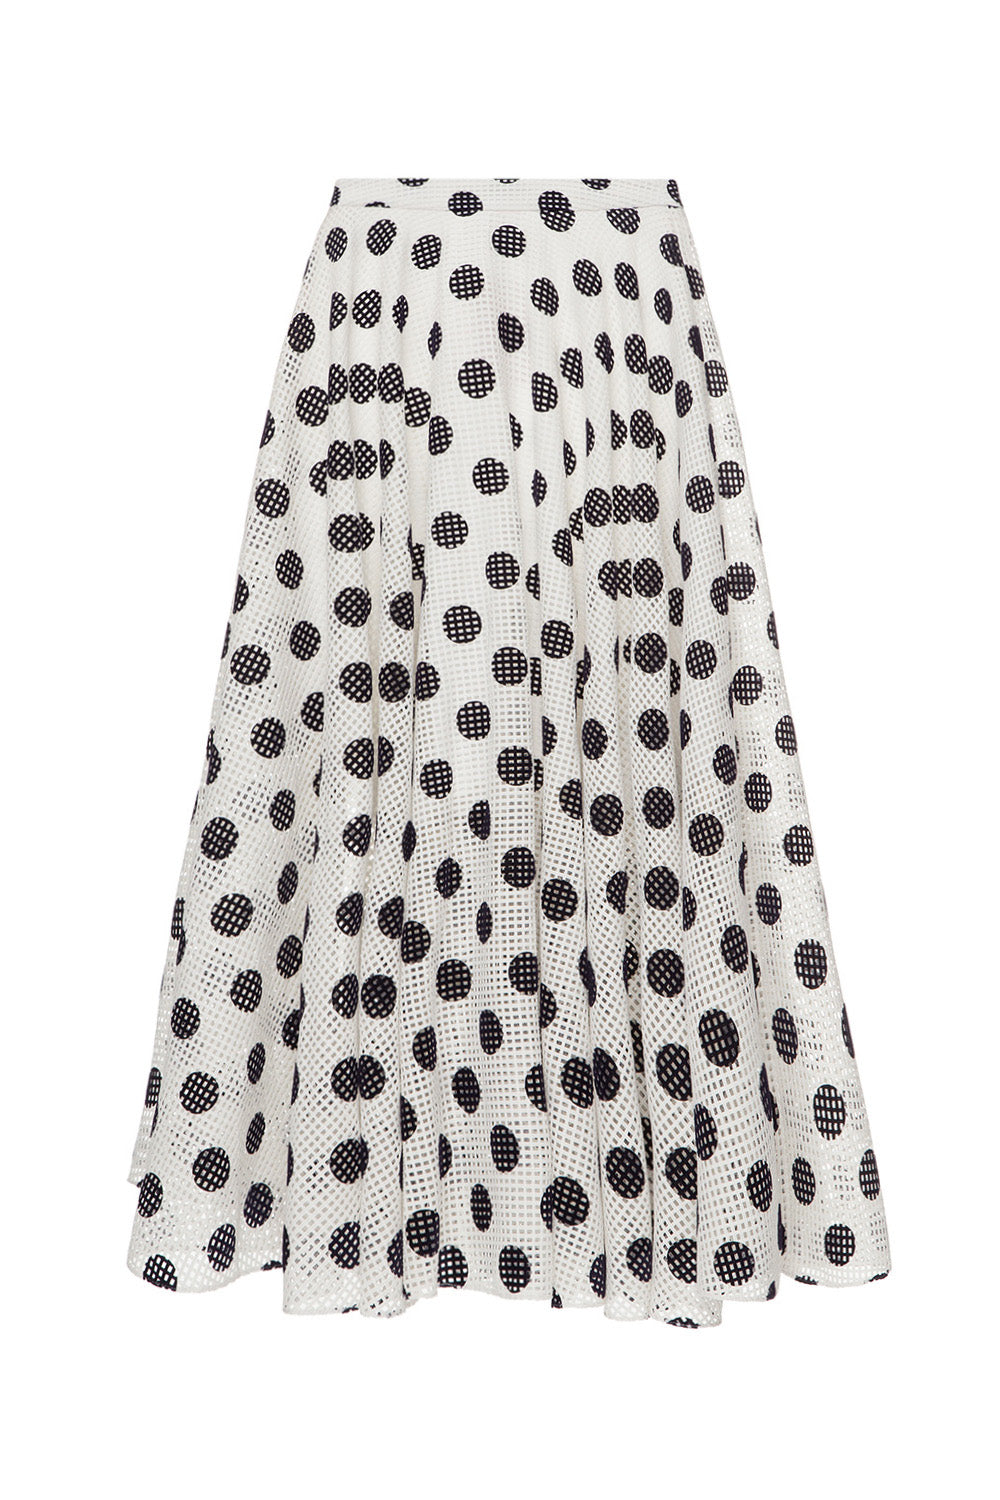 White polka dot skirt